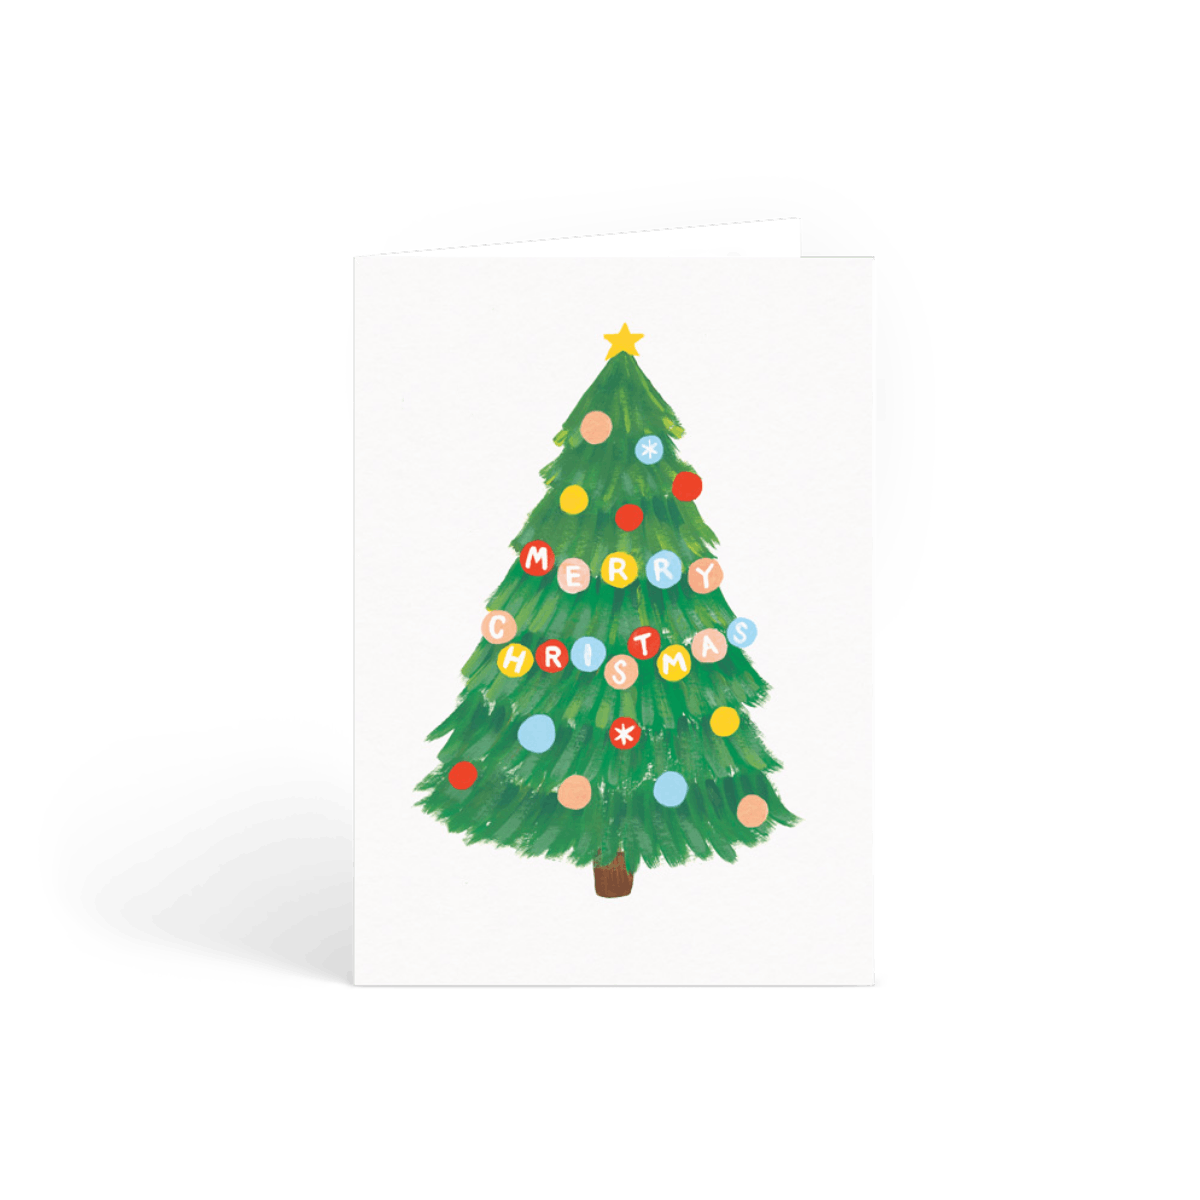 Https%3a%2f%2fwww.papier.com%2fproduct image%2f24872%2f2%2fchristmas tree baubles 6203 front 1498654499.png?ixlib=rb 1.1